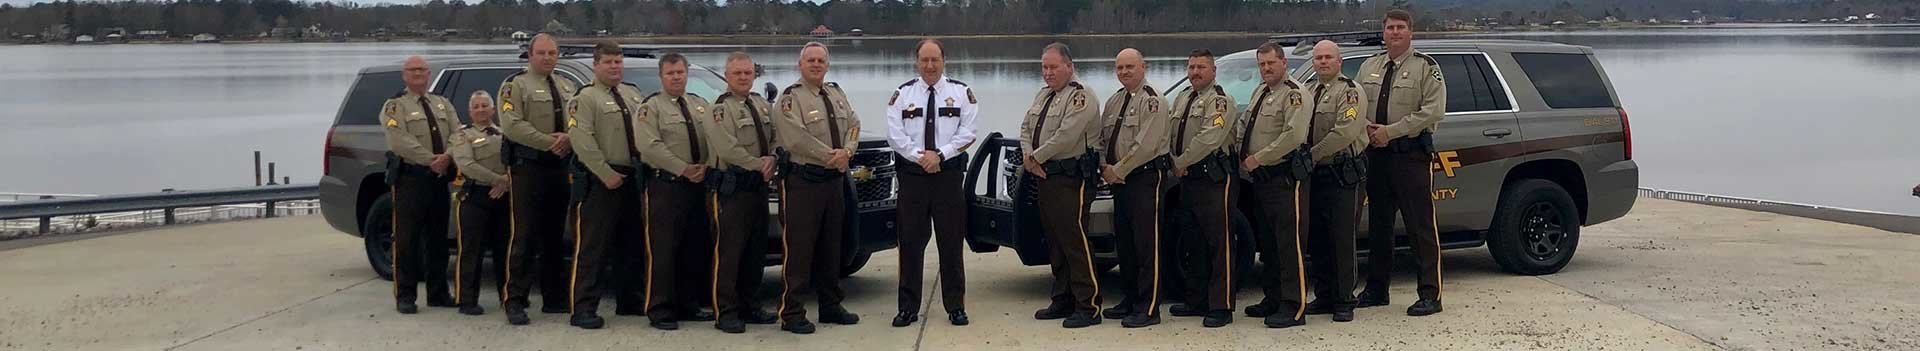 St  Clair County Sheriff's Office